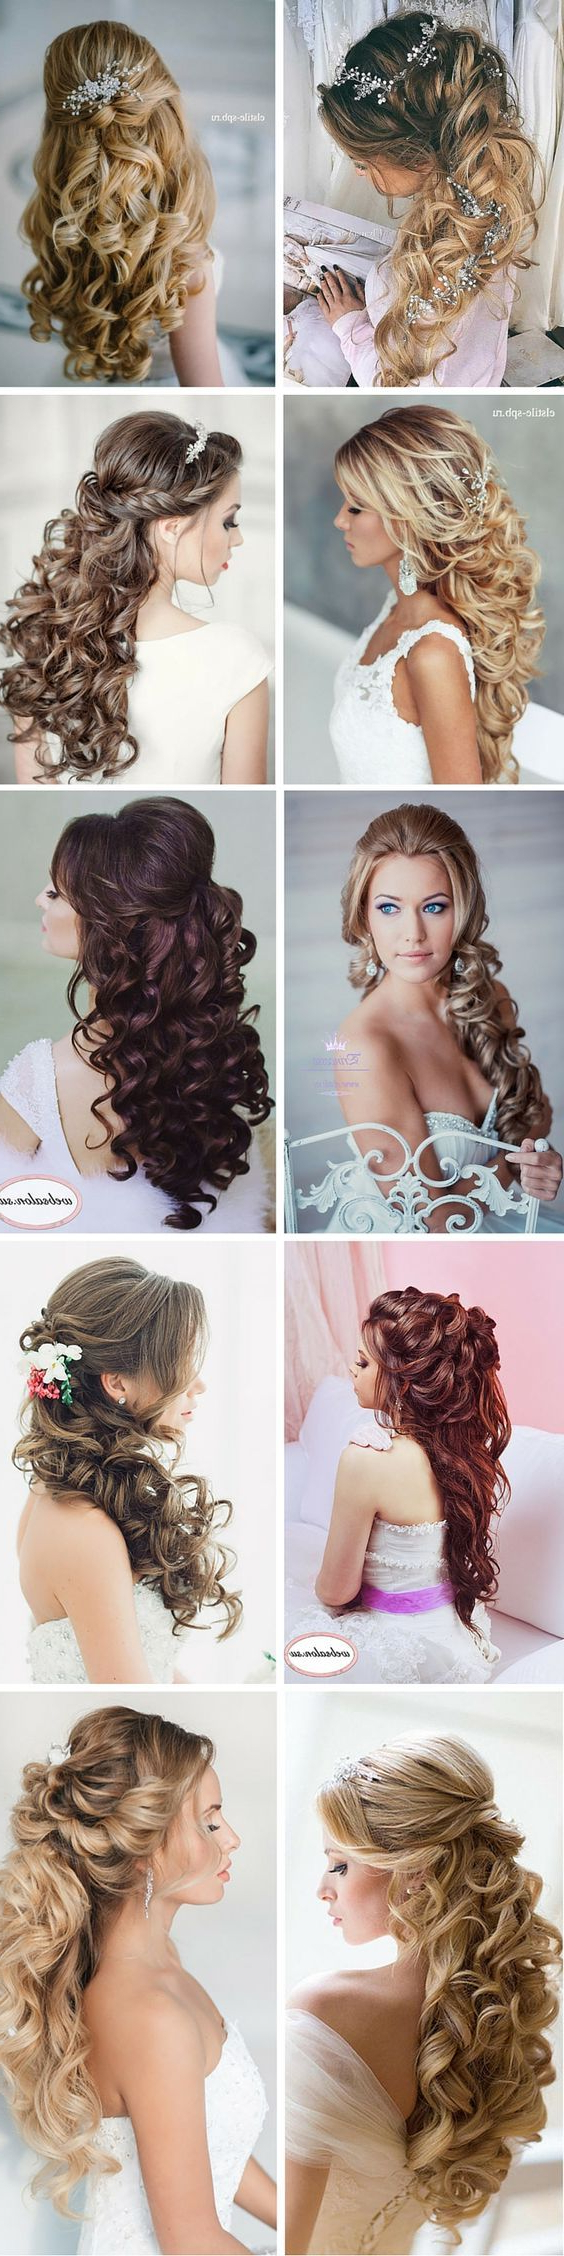 250 Bridal Wedding Hairstyles For Long Hair That Will Inspire Throughout Most Popular Large Curl Updos For Brides (View 4 of 20)